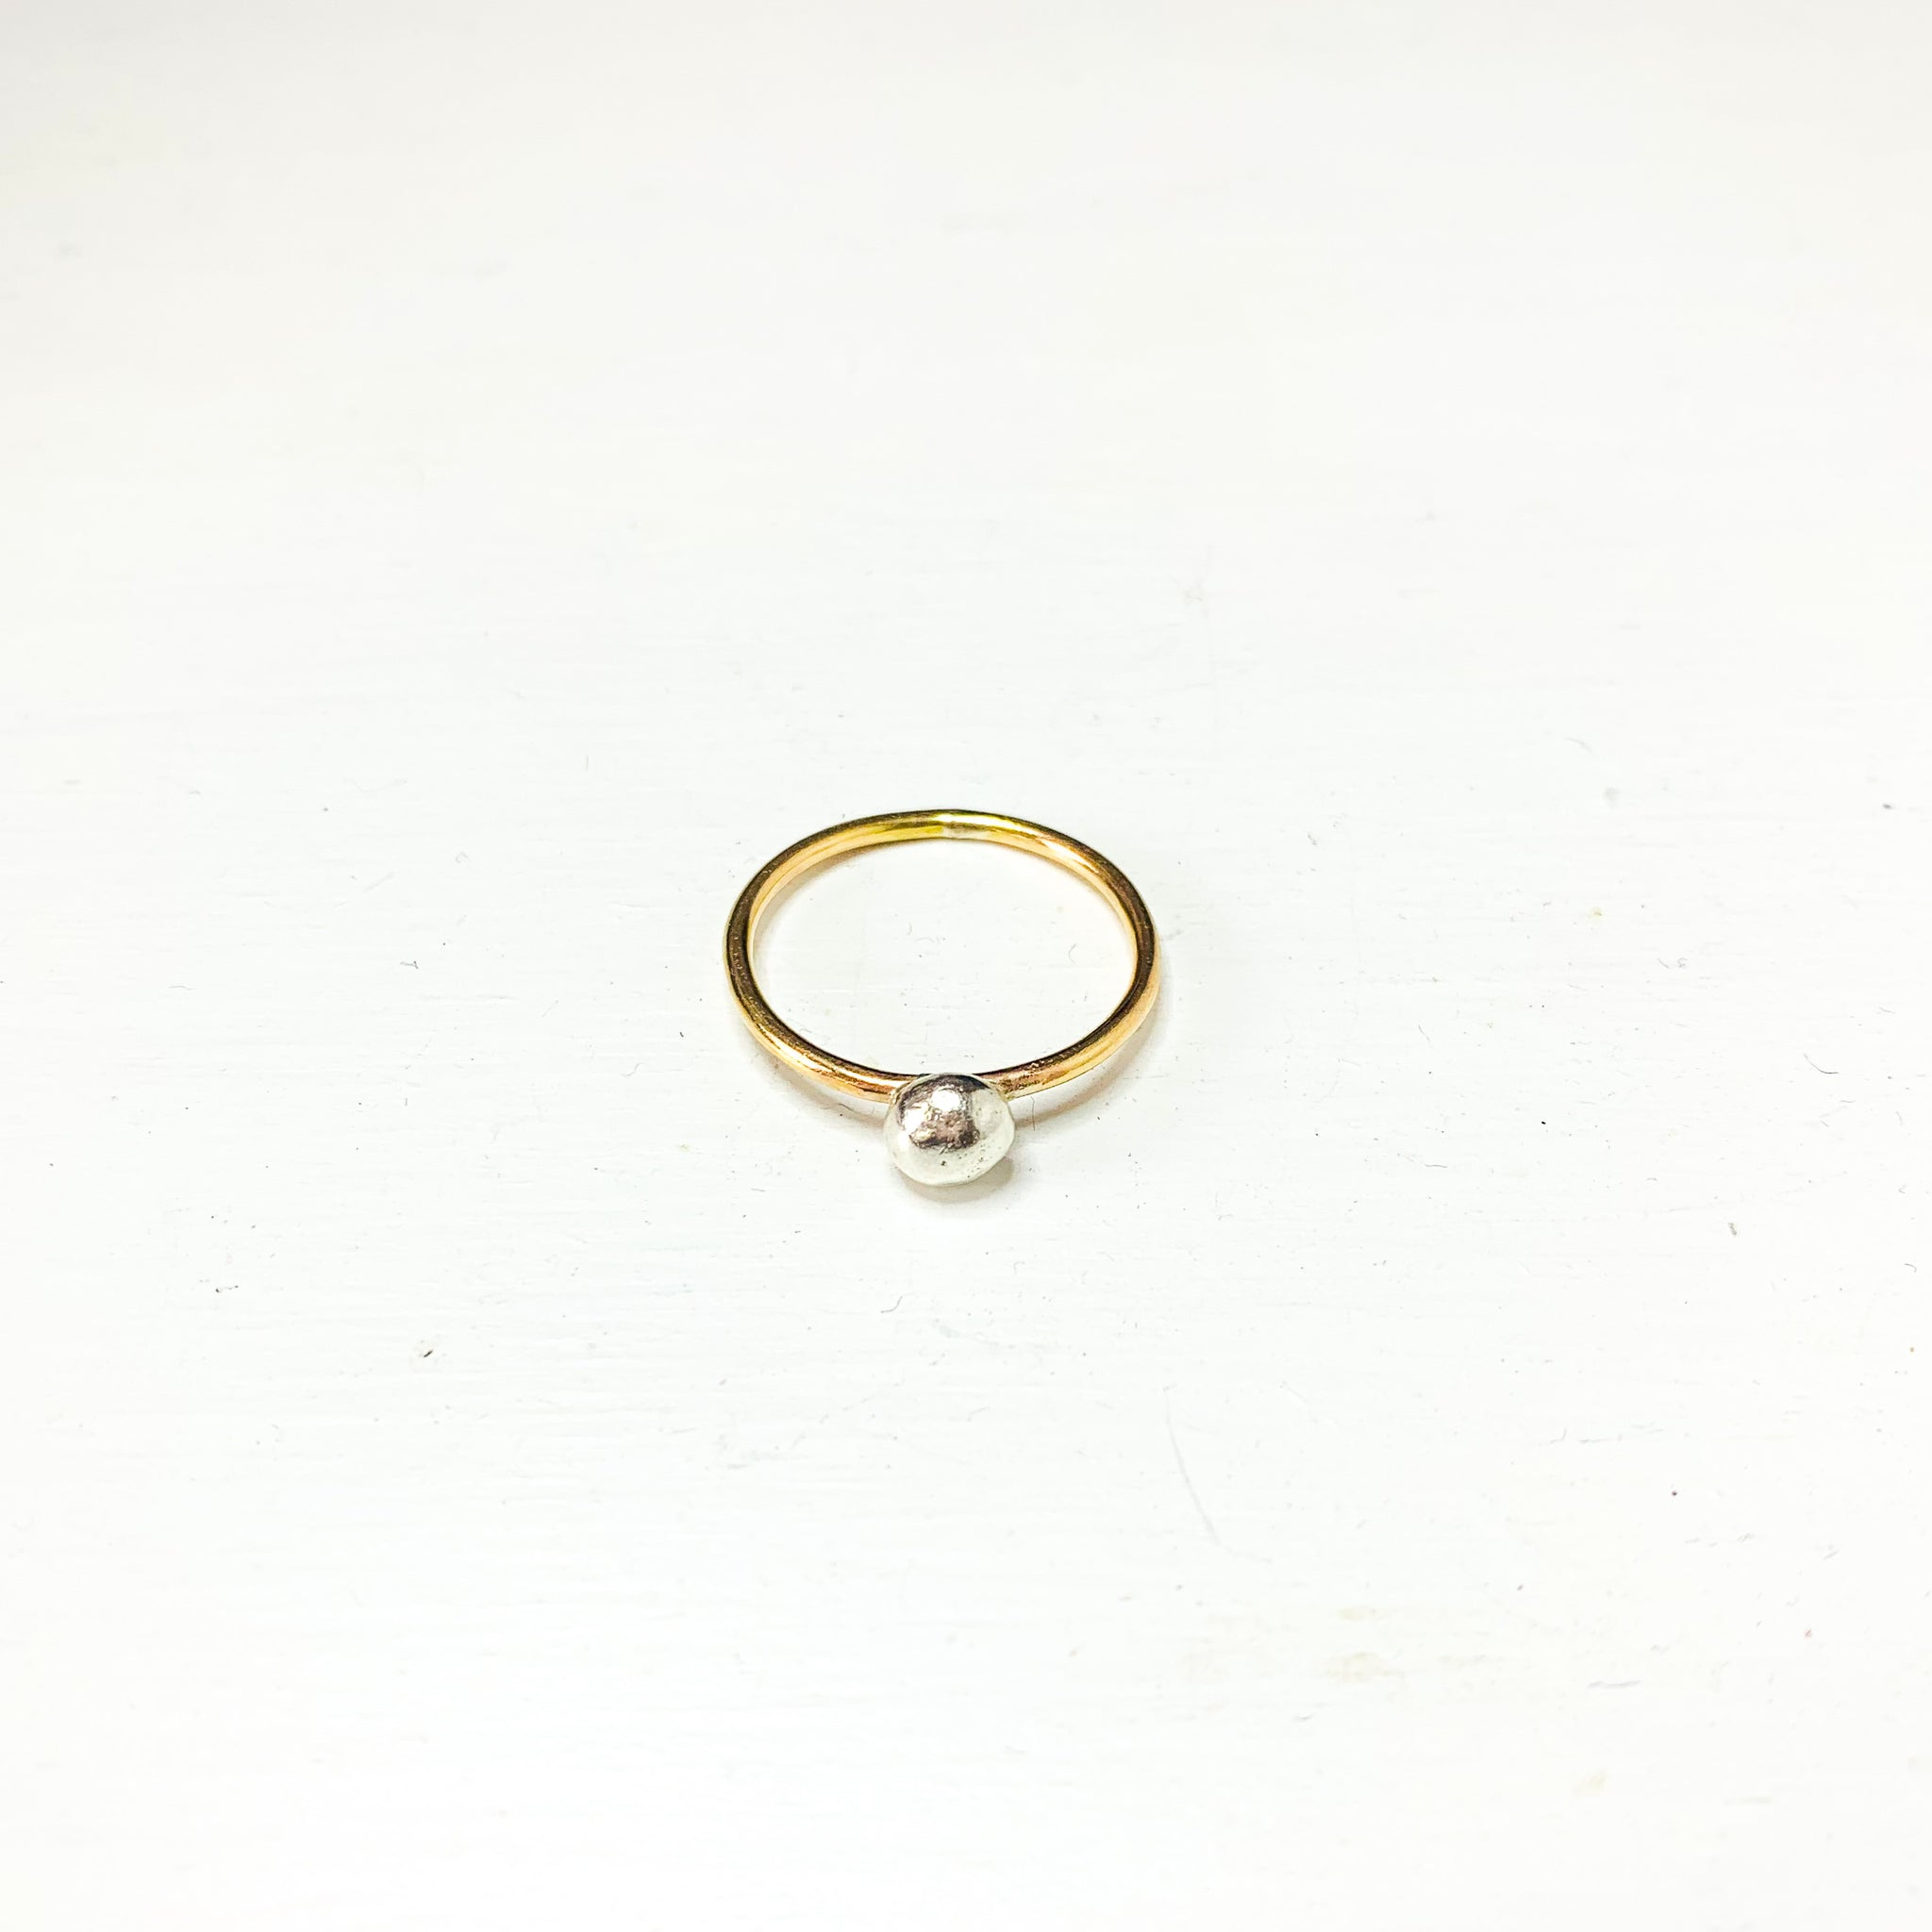 Medium Organic Bubble Mixed Metal Ring